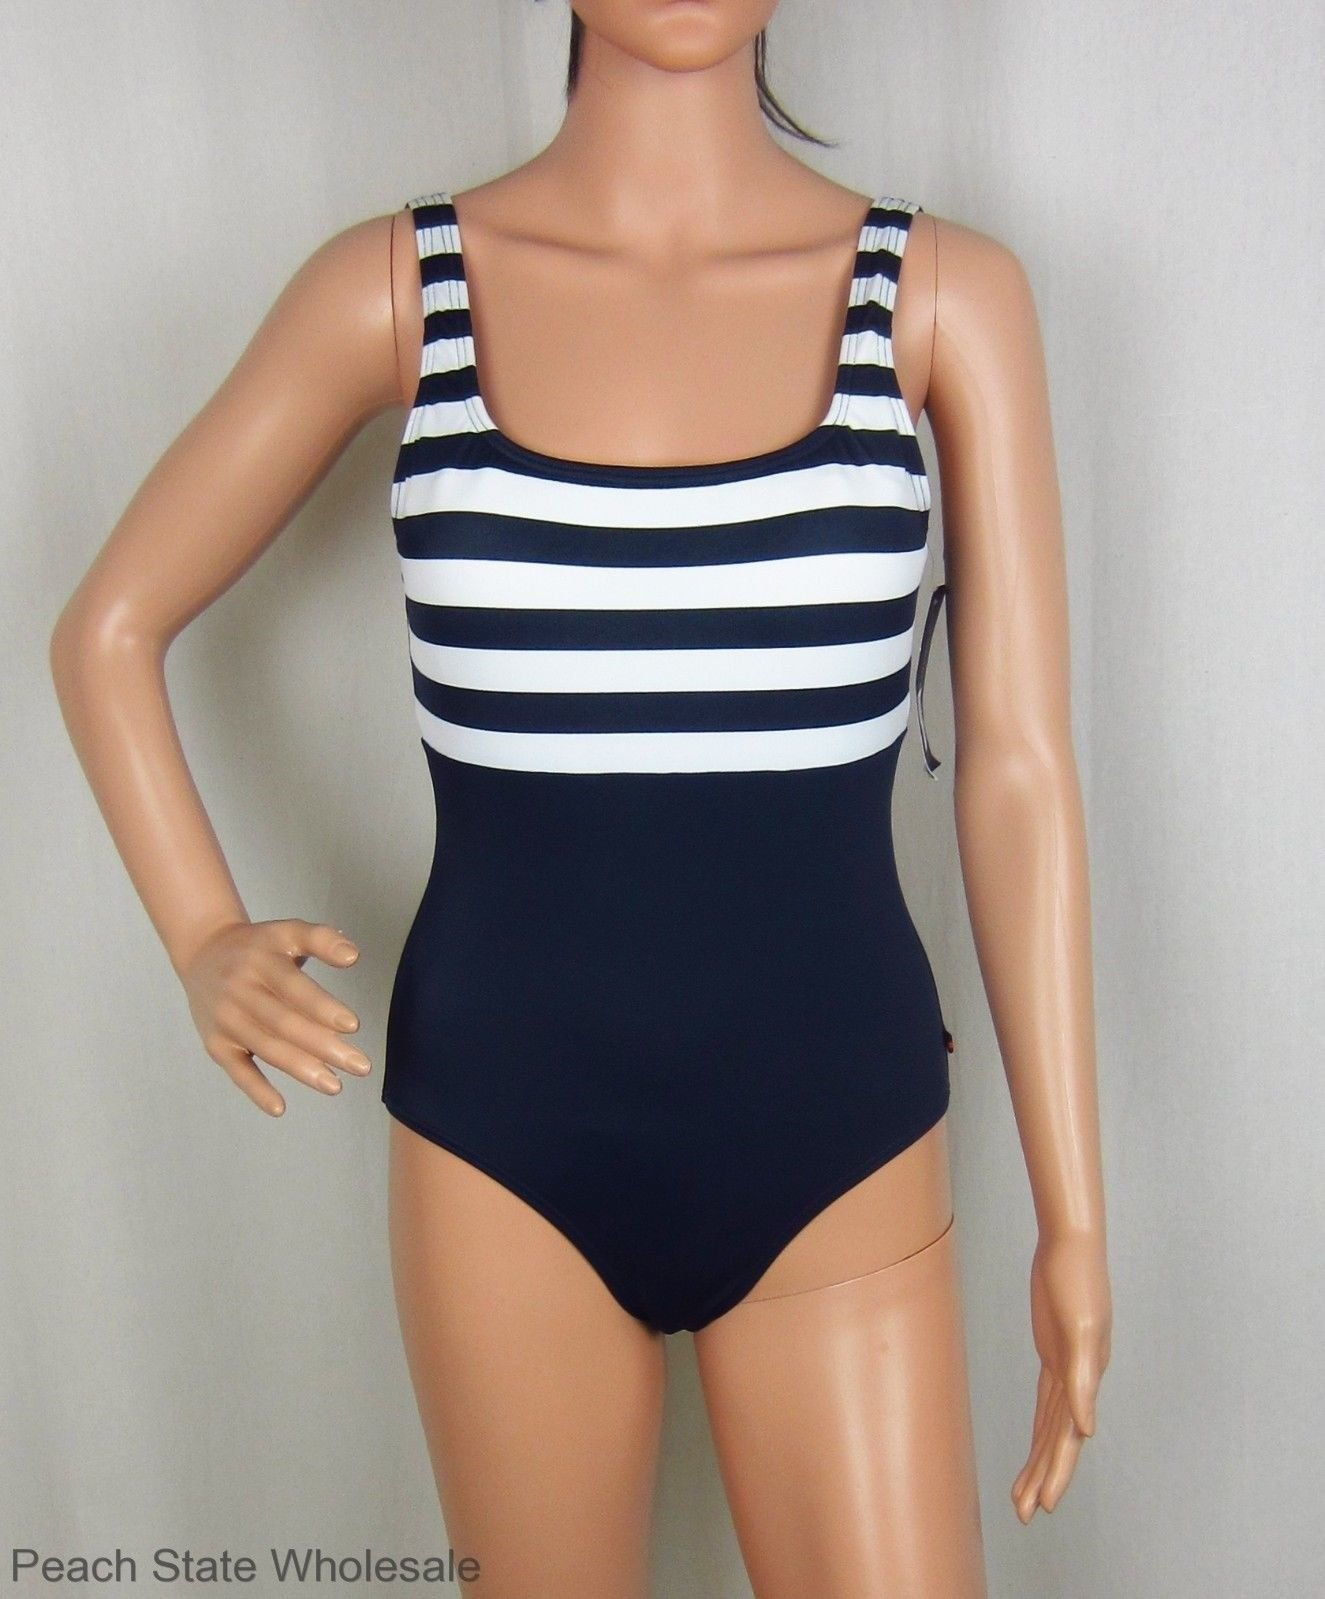 1677058abb468 NWT Tommy Hilfiger Navy Blue   White Stripe Scoop Back One-Piece Swimsuit  Size 6